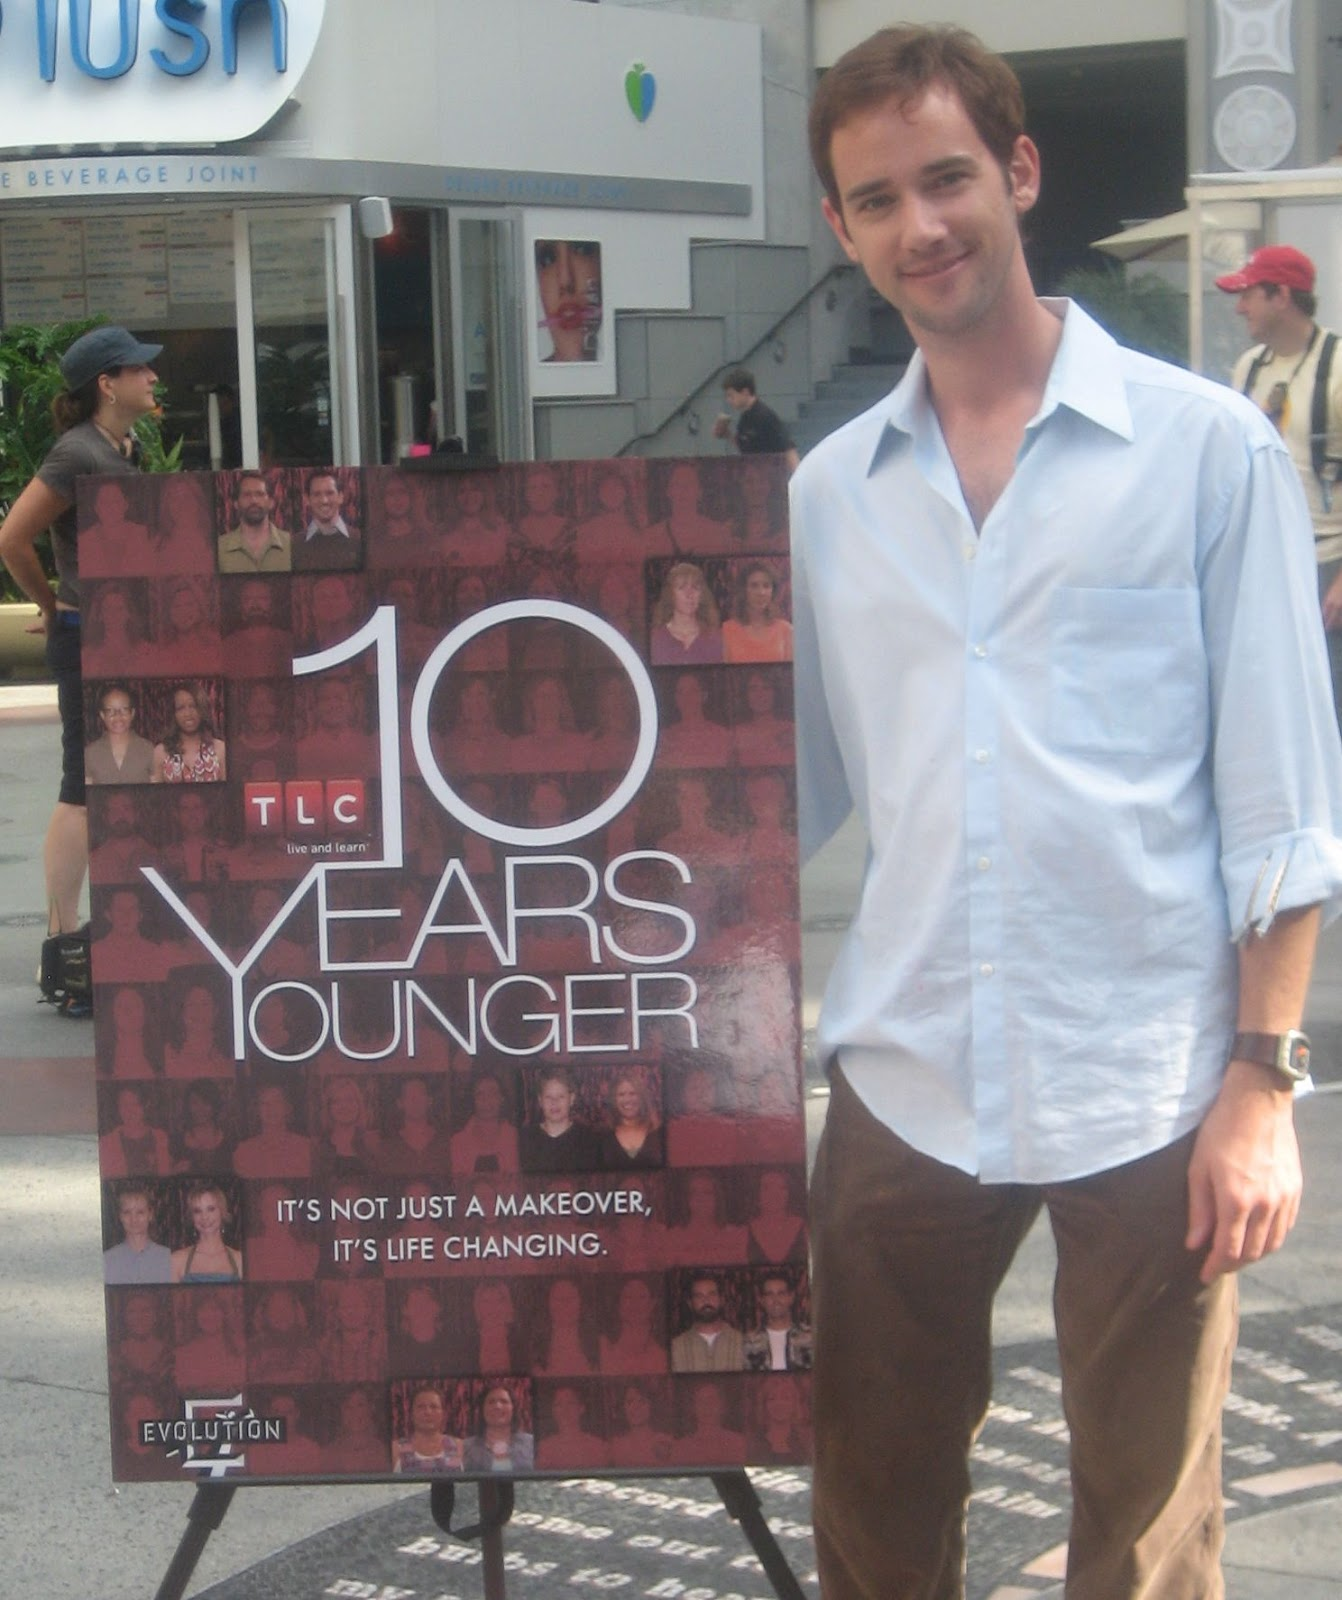 Celebrity Hair Stylist Billy Lowe on TLC 10 Years Younger